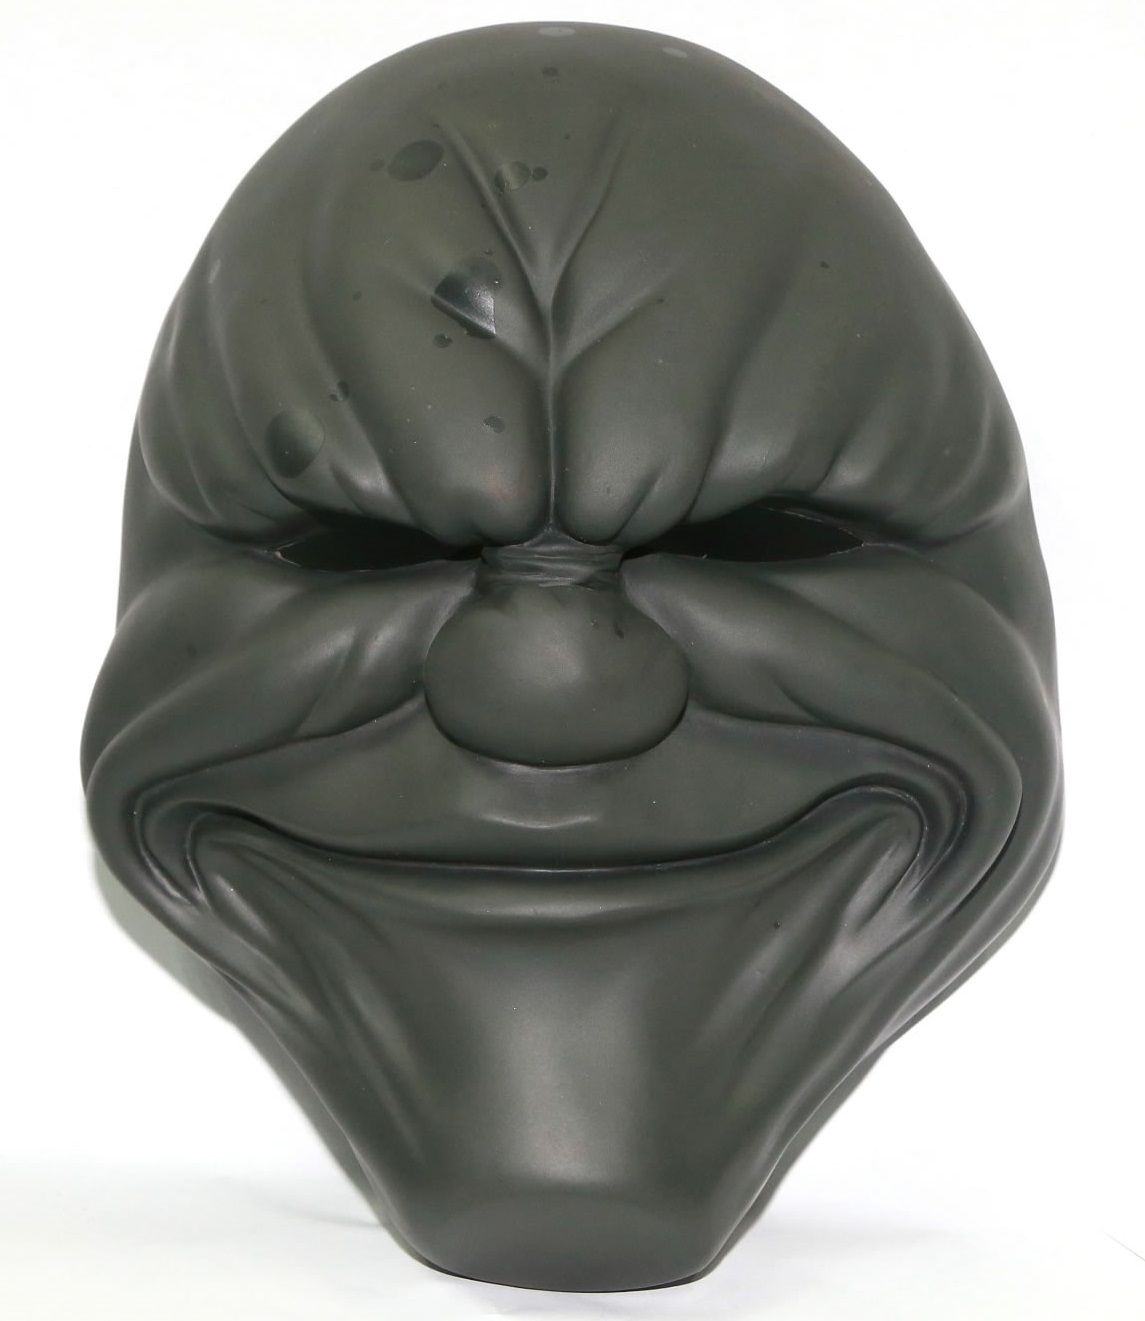 Would you like to wear the payday mask? http://www.paydaymask.com ...